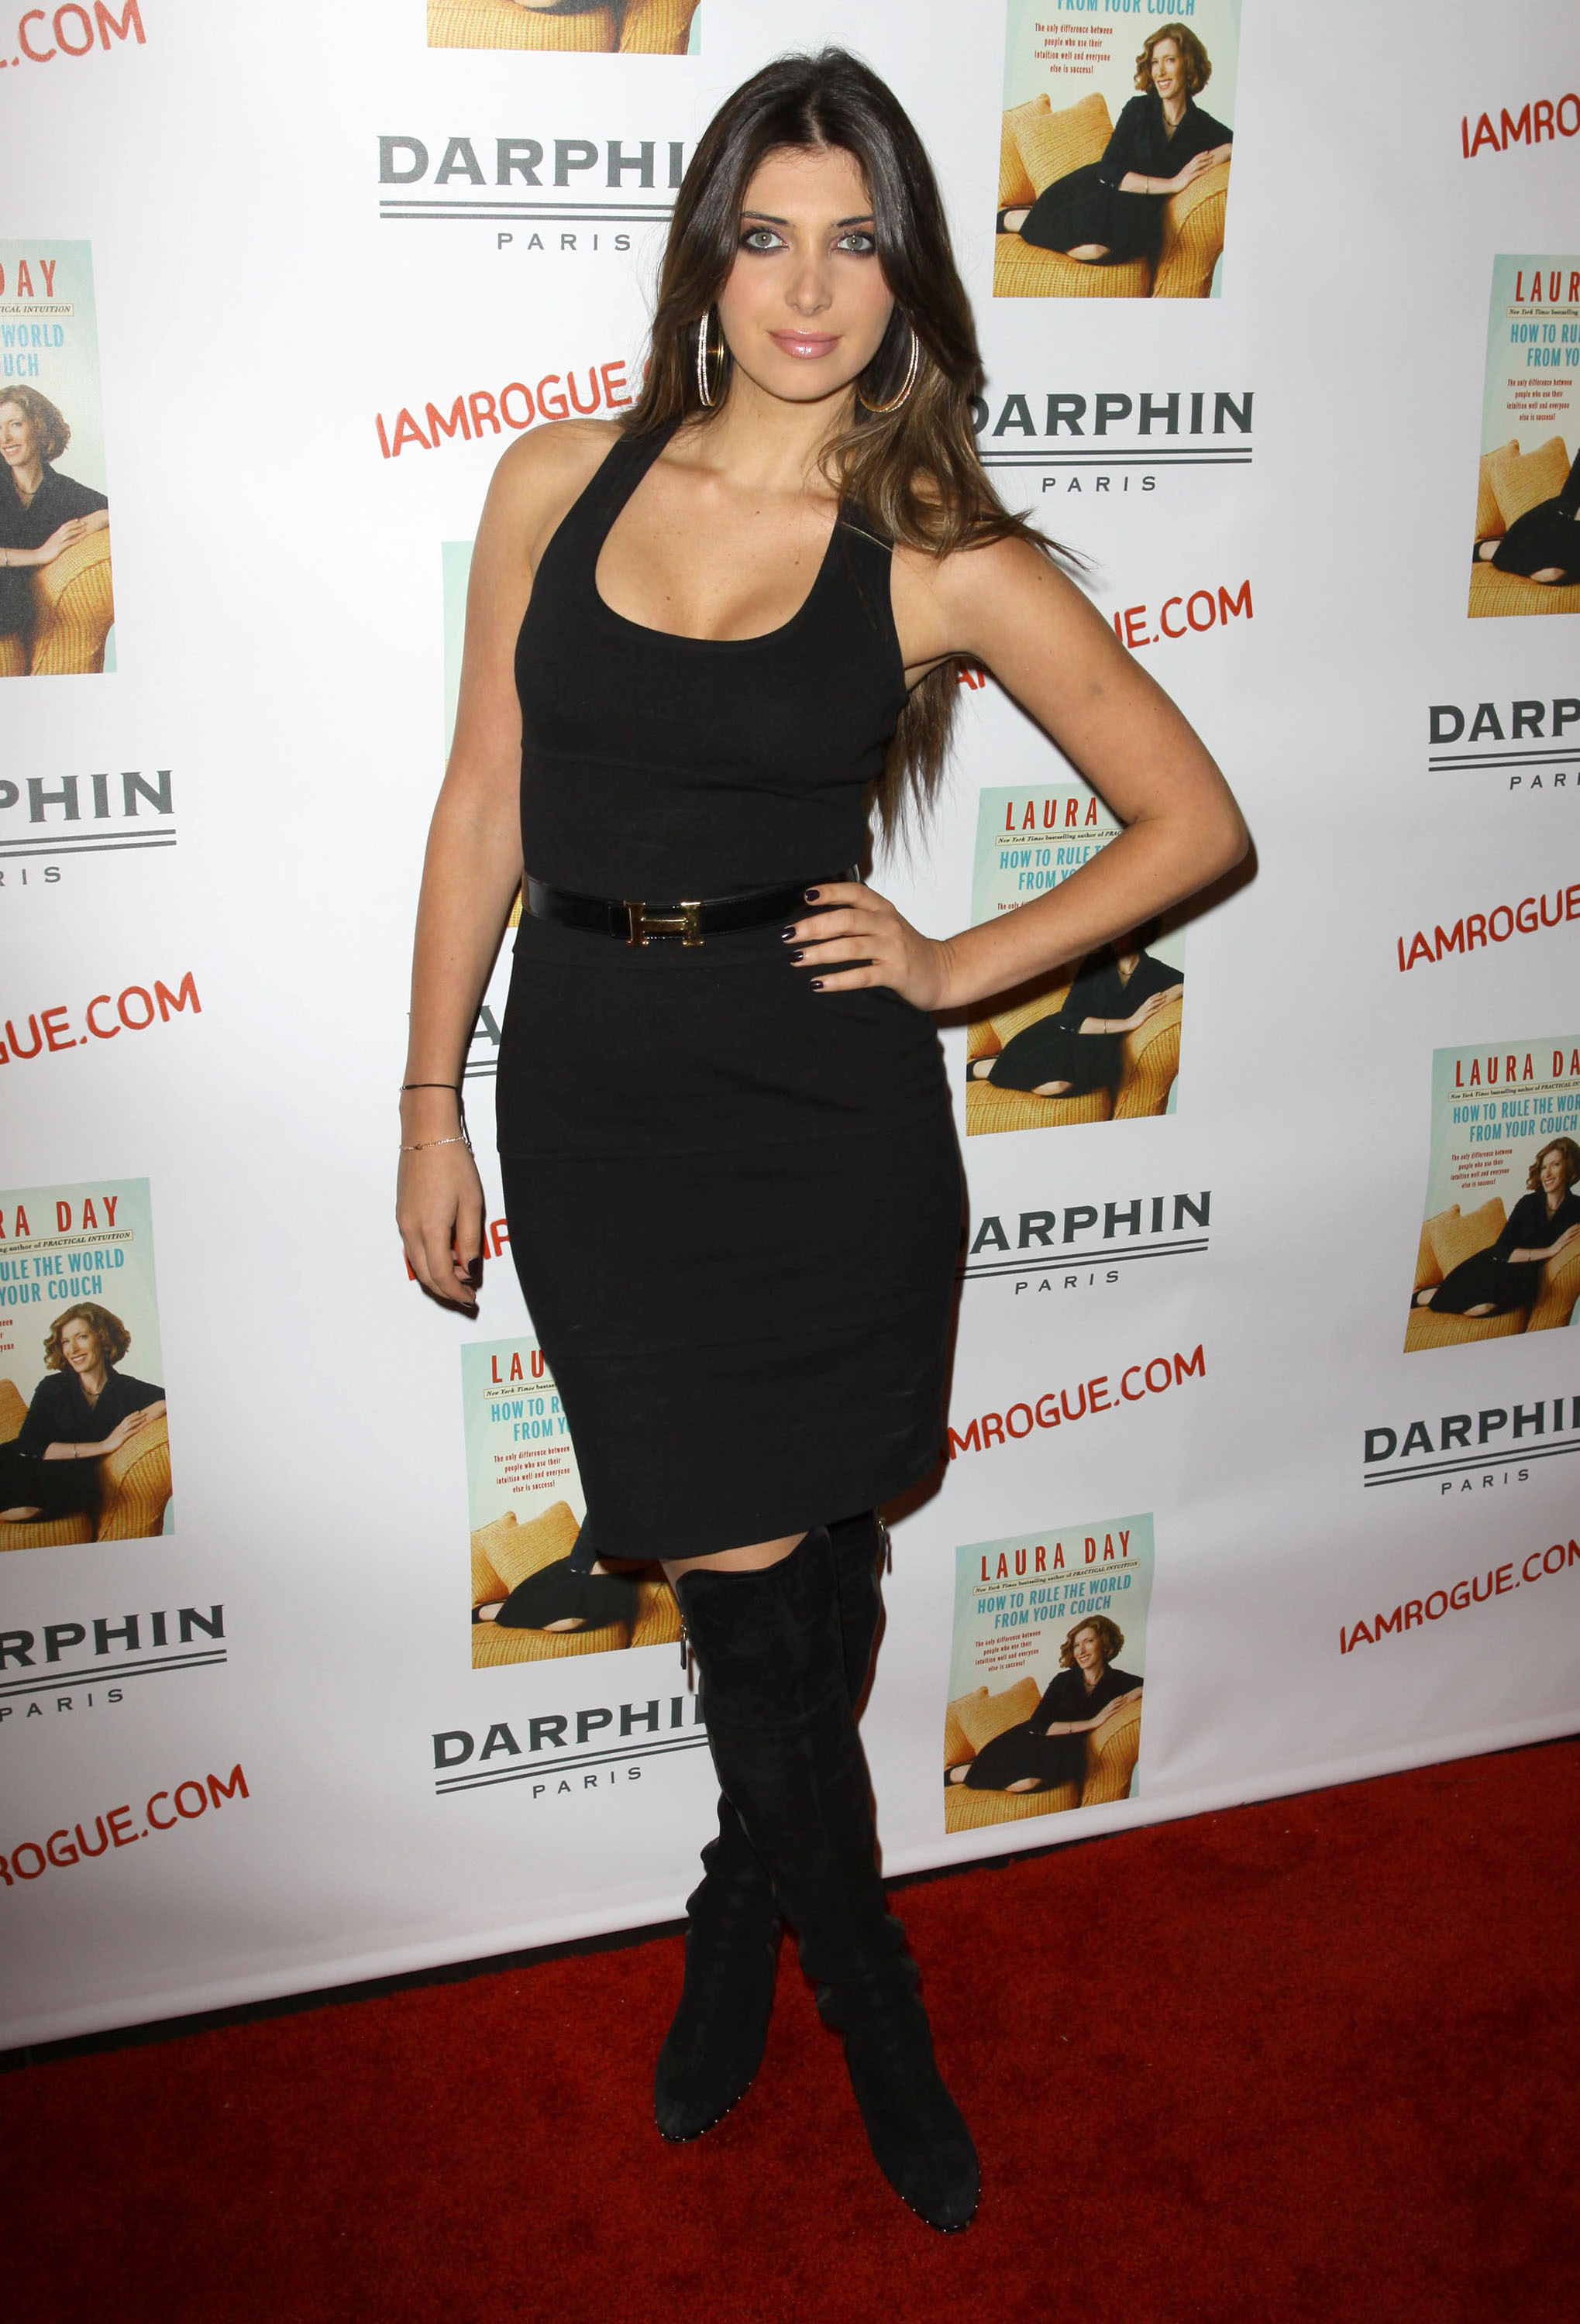 02402_celebrity-paradise.com-The_Elder-Brittny_Gastineau_2009-10-19_-_Book_Party_For_Laura_Day_873_122_434lo.jpg